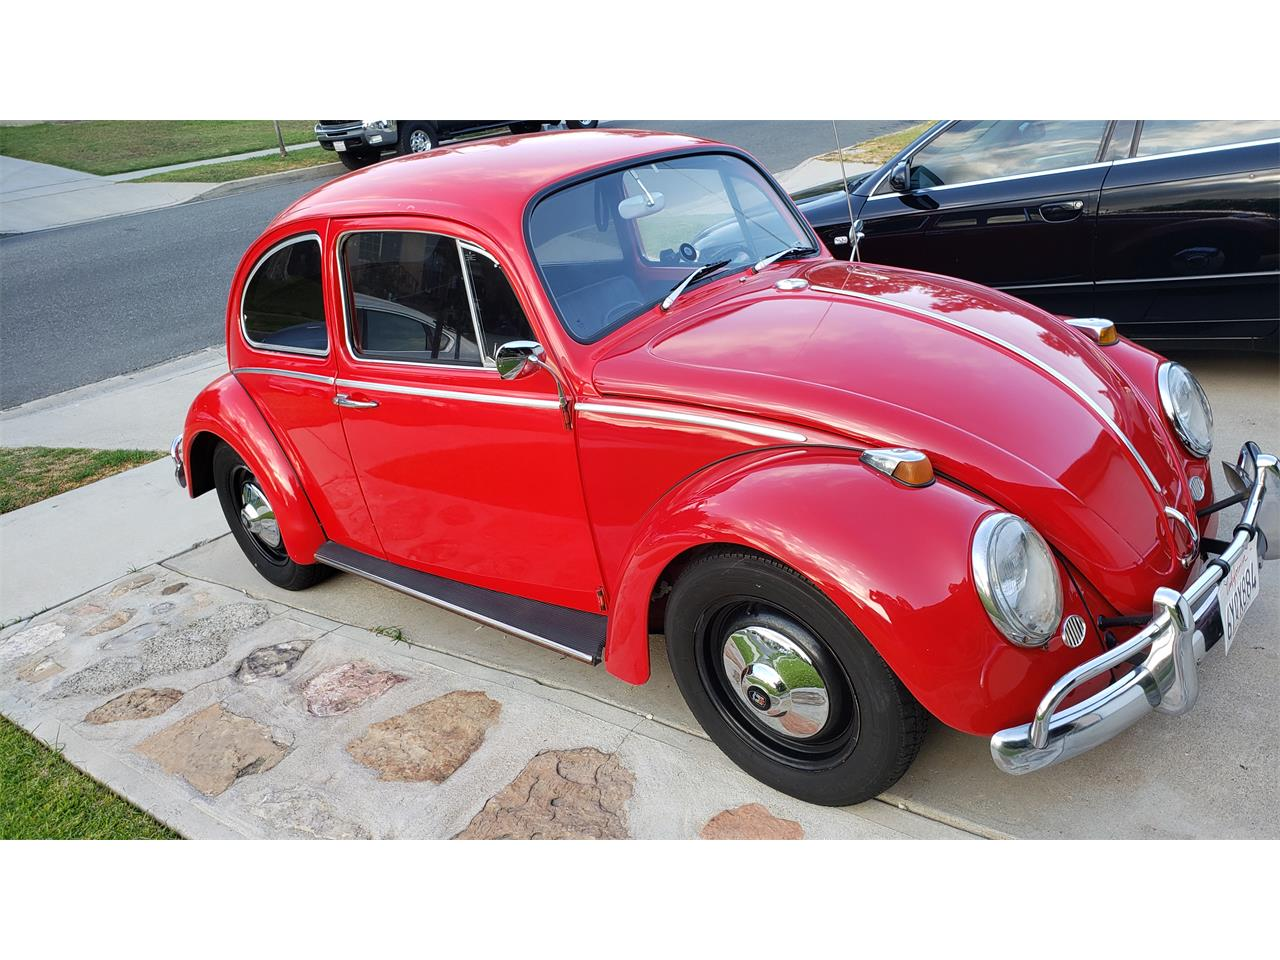 Large Picture of Classic '65 Volkswagen Beetle - $12,000.00 Offered by a Private Seller - QXYY